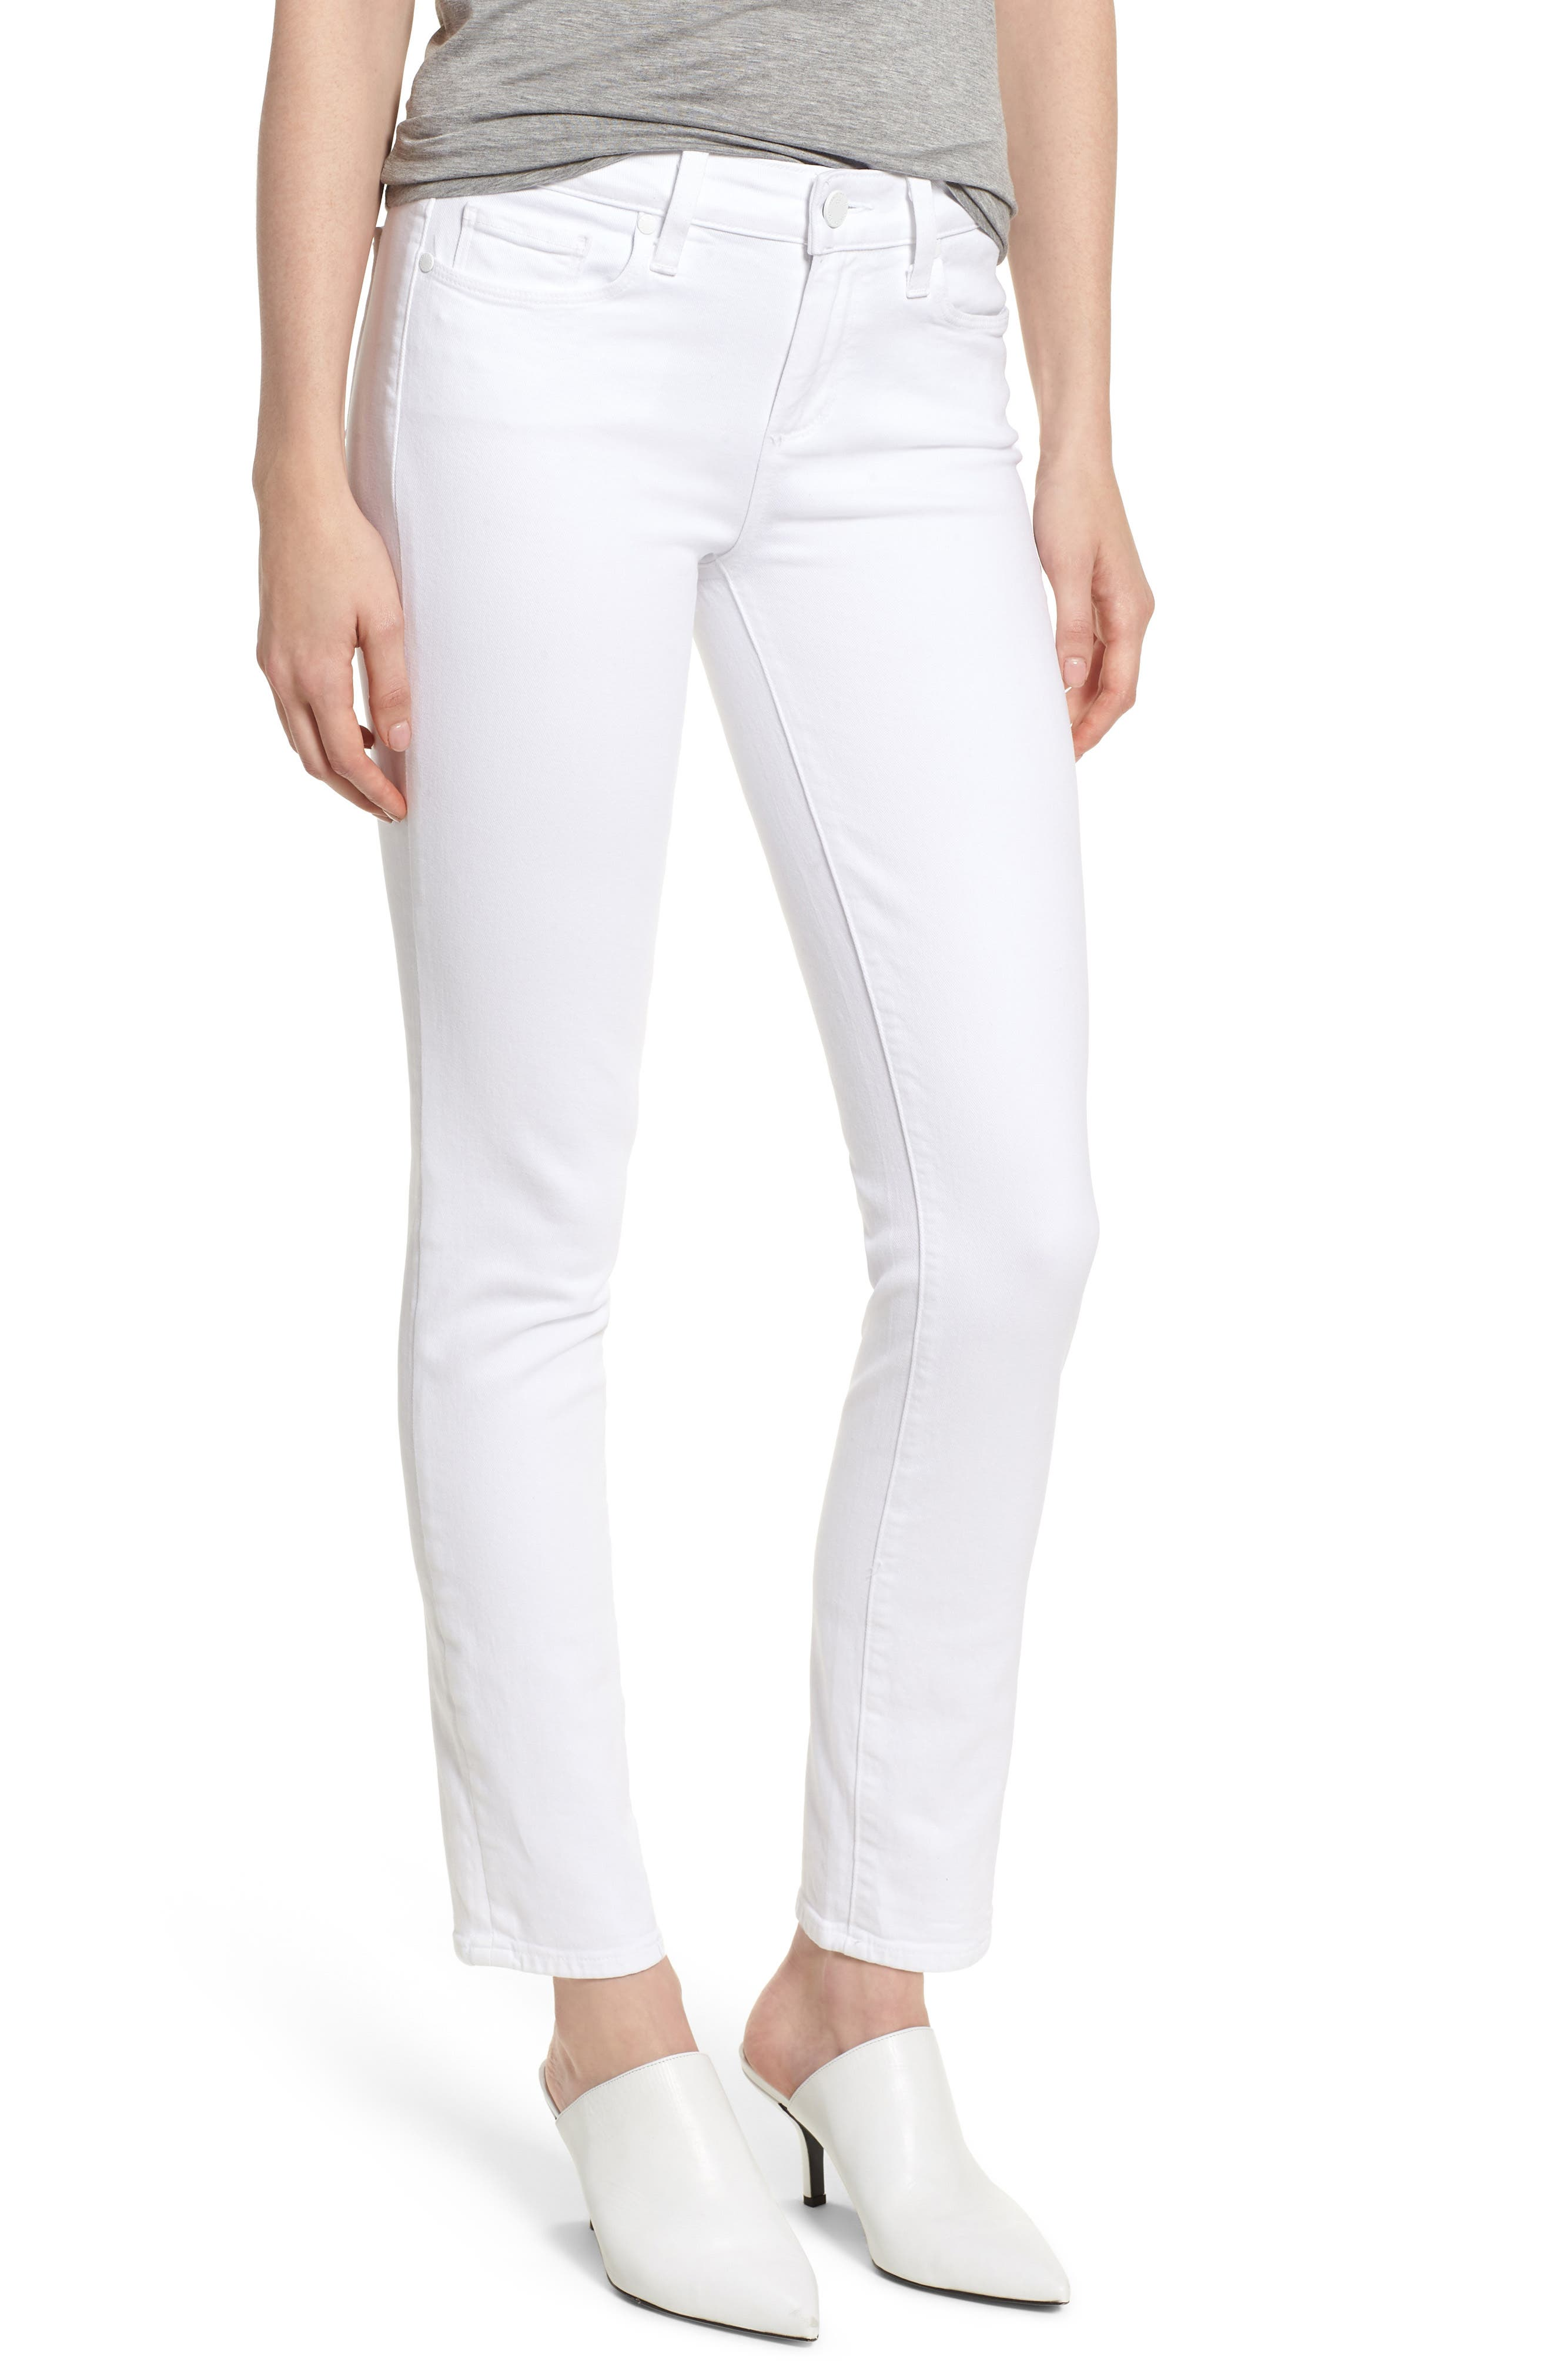 Skyline Ankle Peg Skinny Jeans,                         Main,                         color, CRISP WHITE